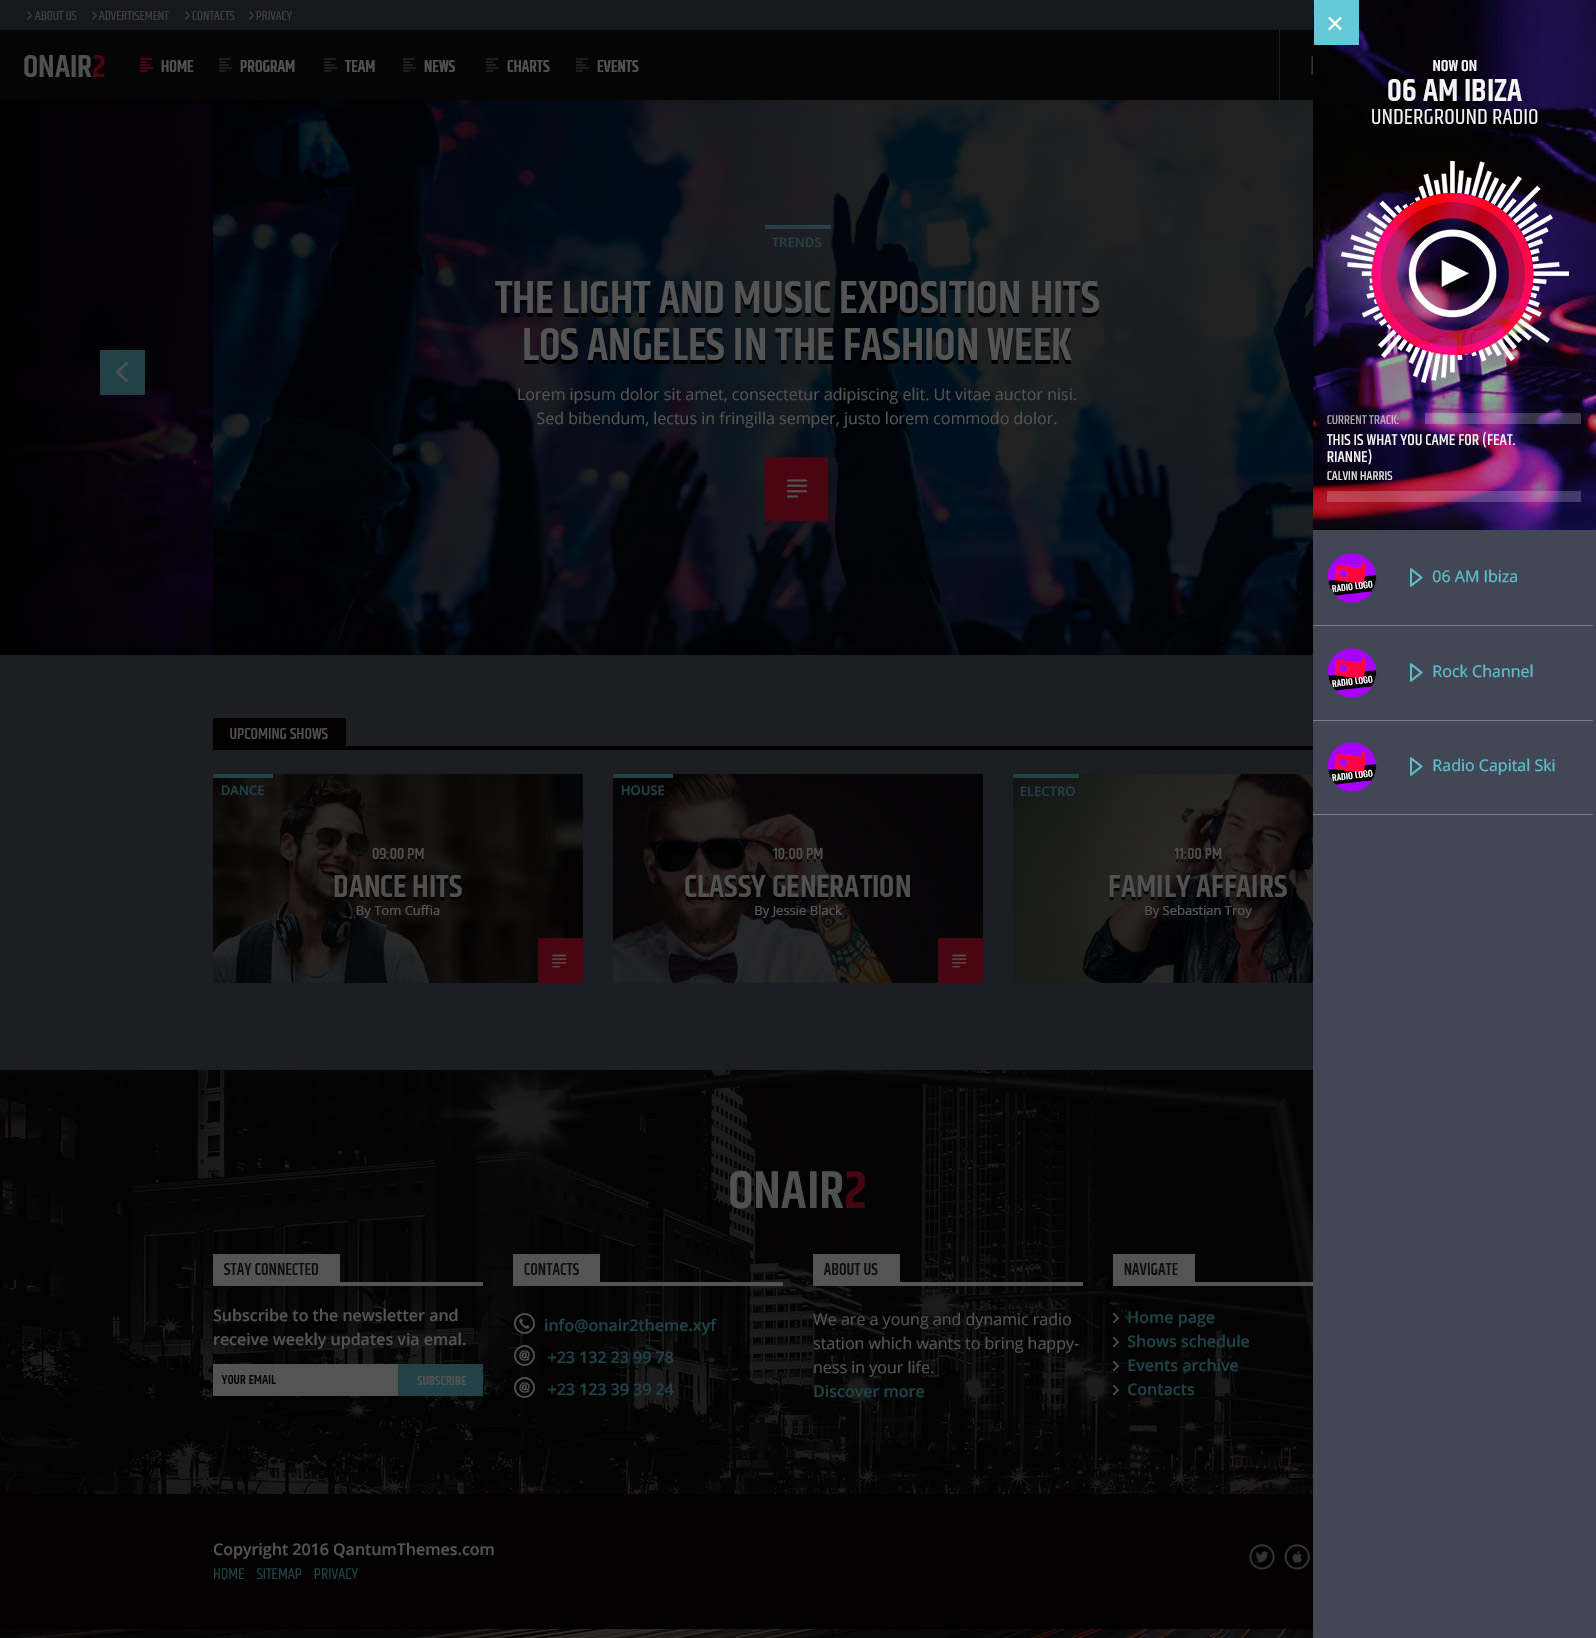 on air 2 radio station html website template by qantumthemes